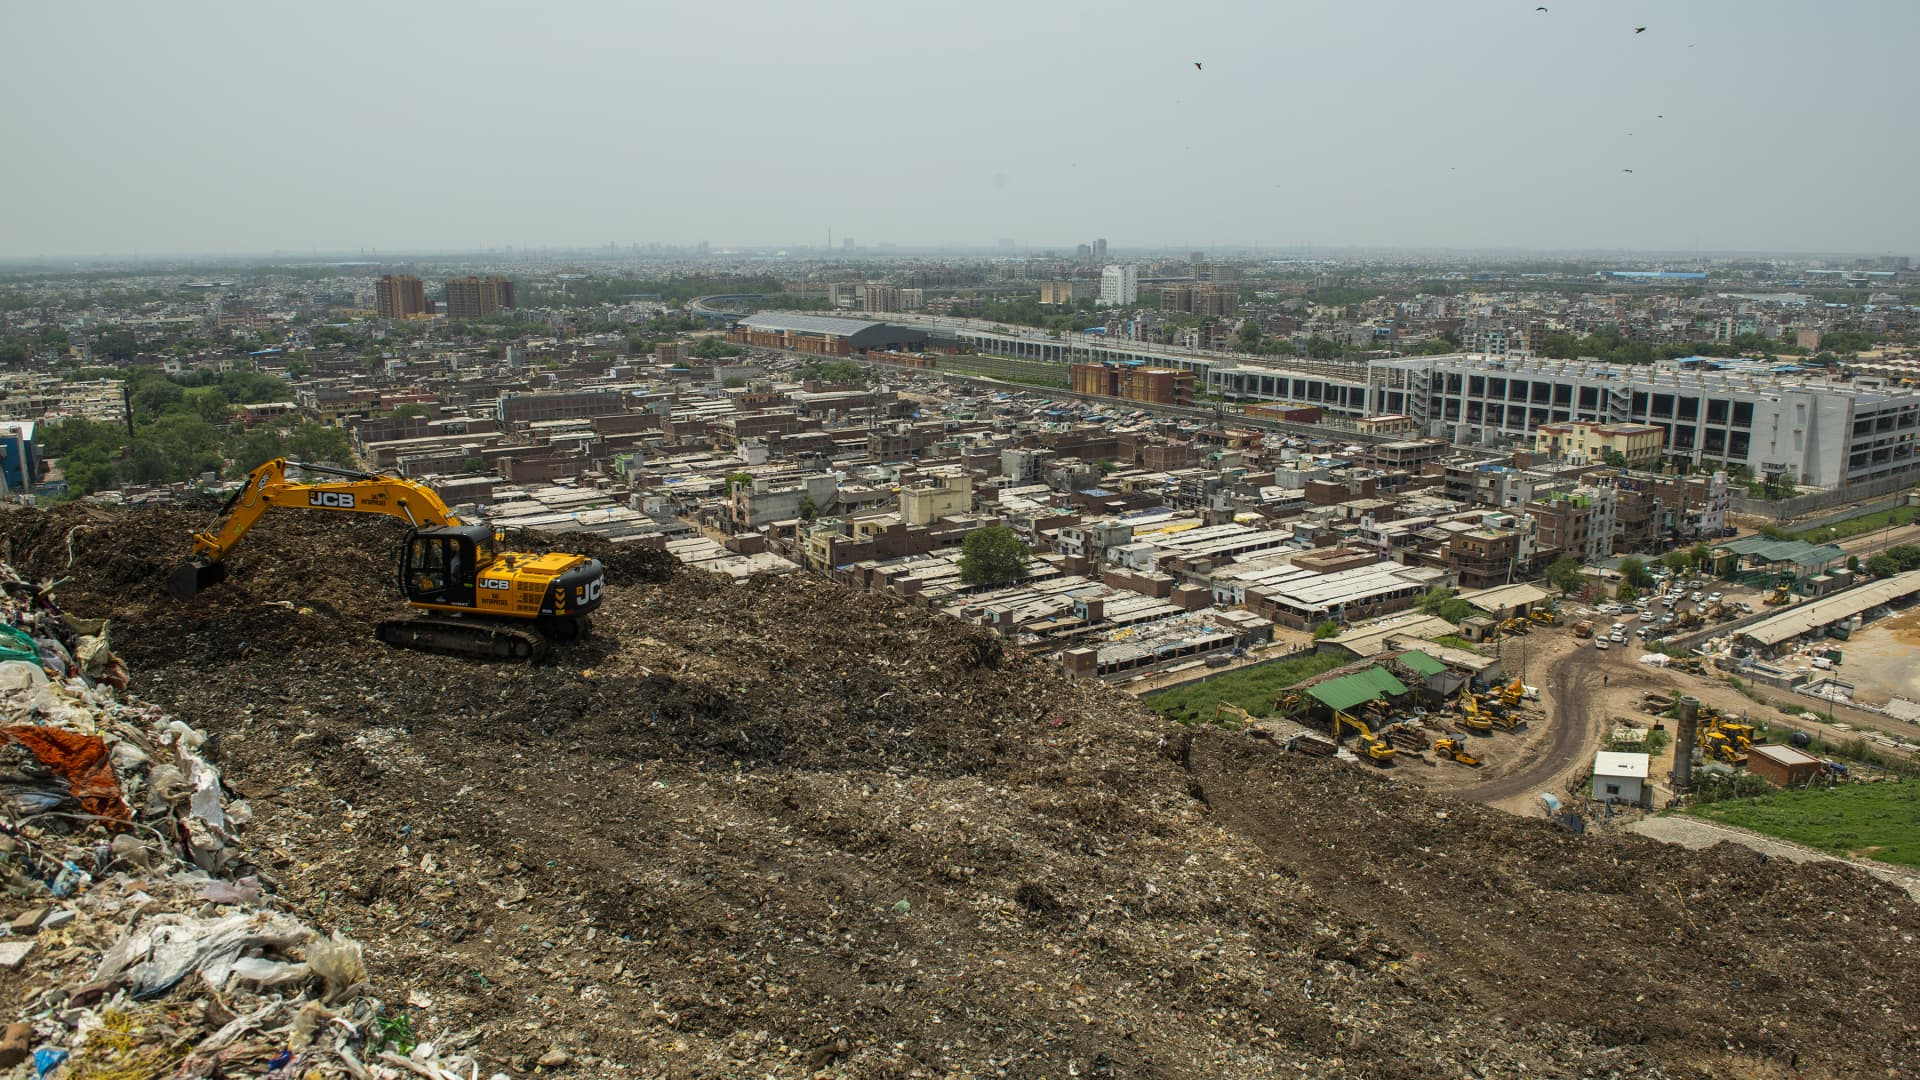 A machine picking up waste in the pile of garbage at the Ghazipur land fill site where city's daily waste has been dumped for last 35 years. The machine separates waste into three parts first stone and heavy concrete material second plastic, polythene and third is fertilizer and soils.